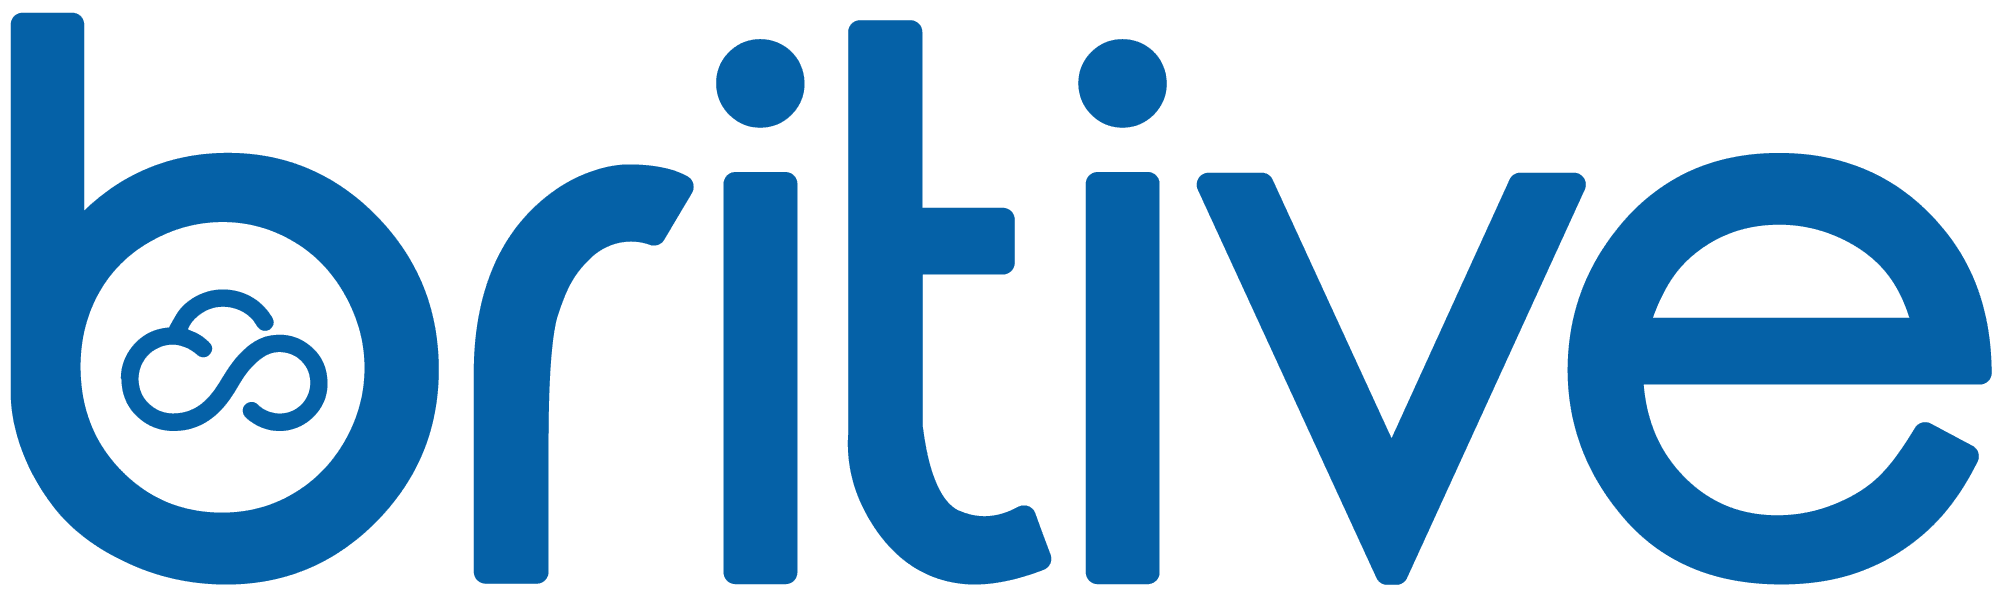 Security startup Britive